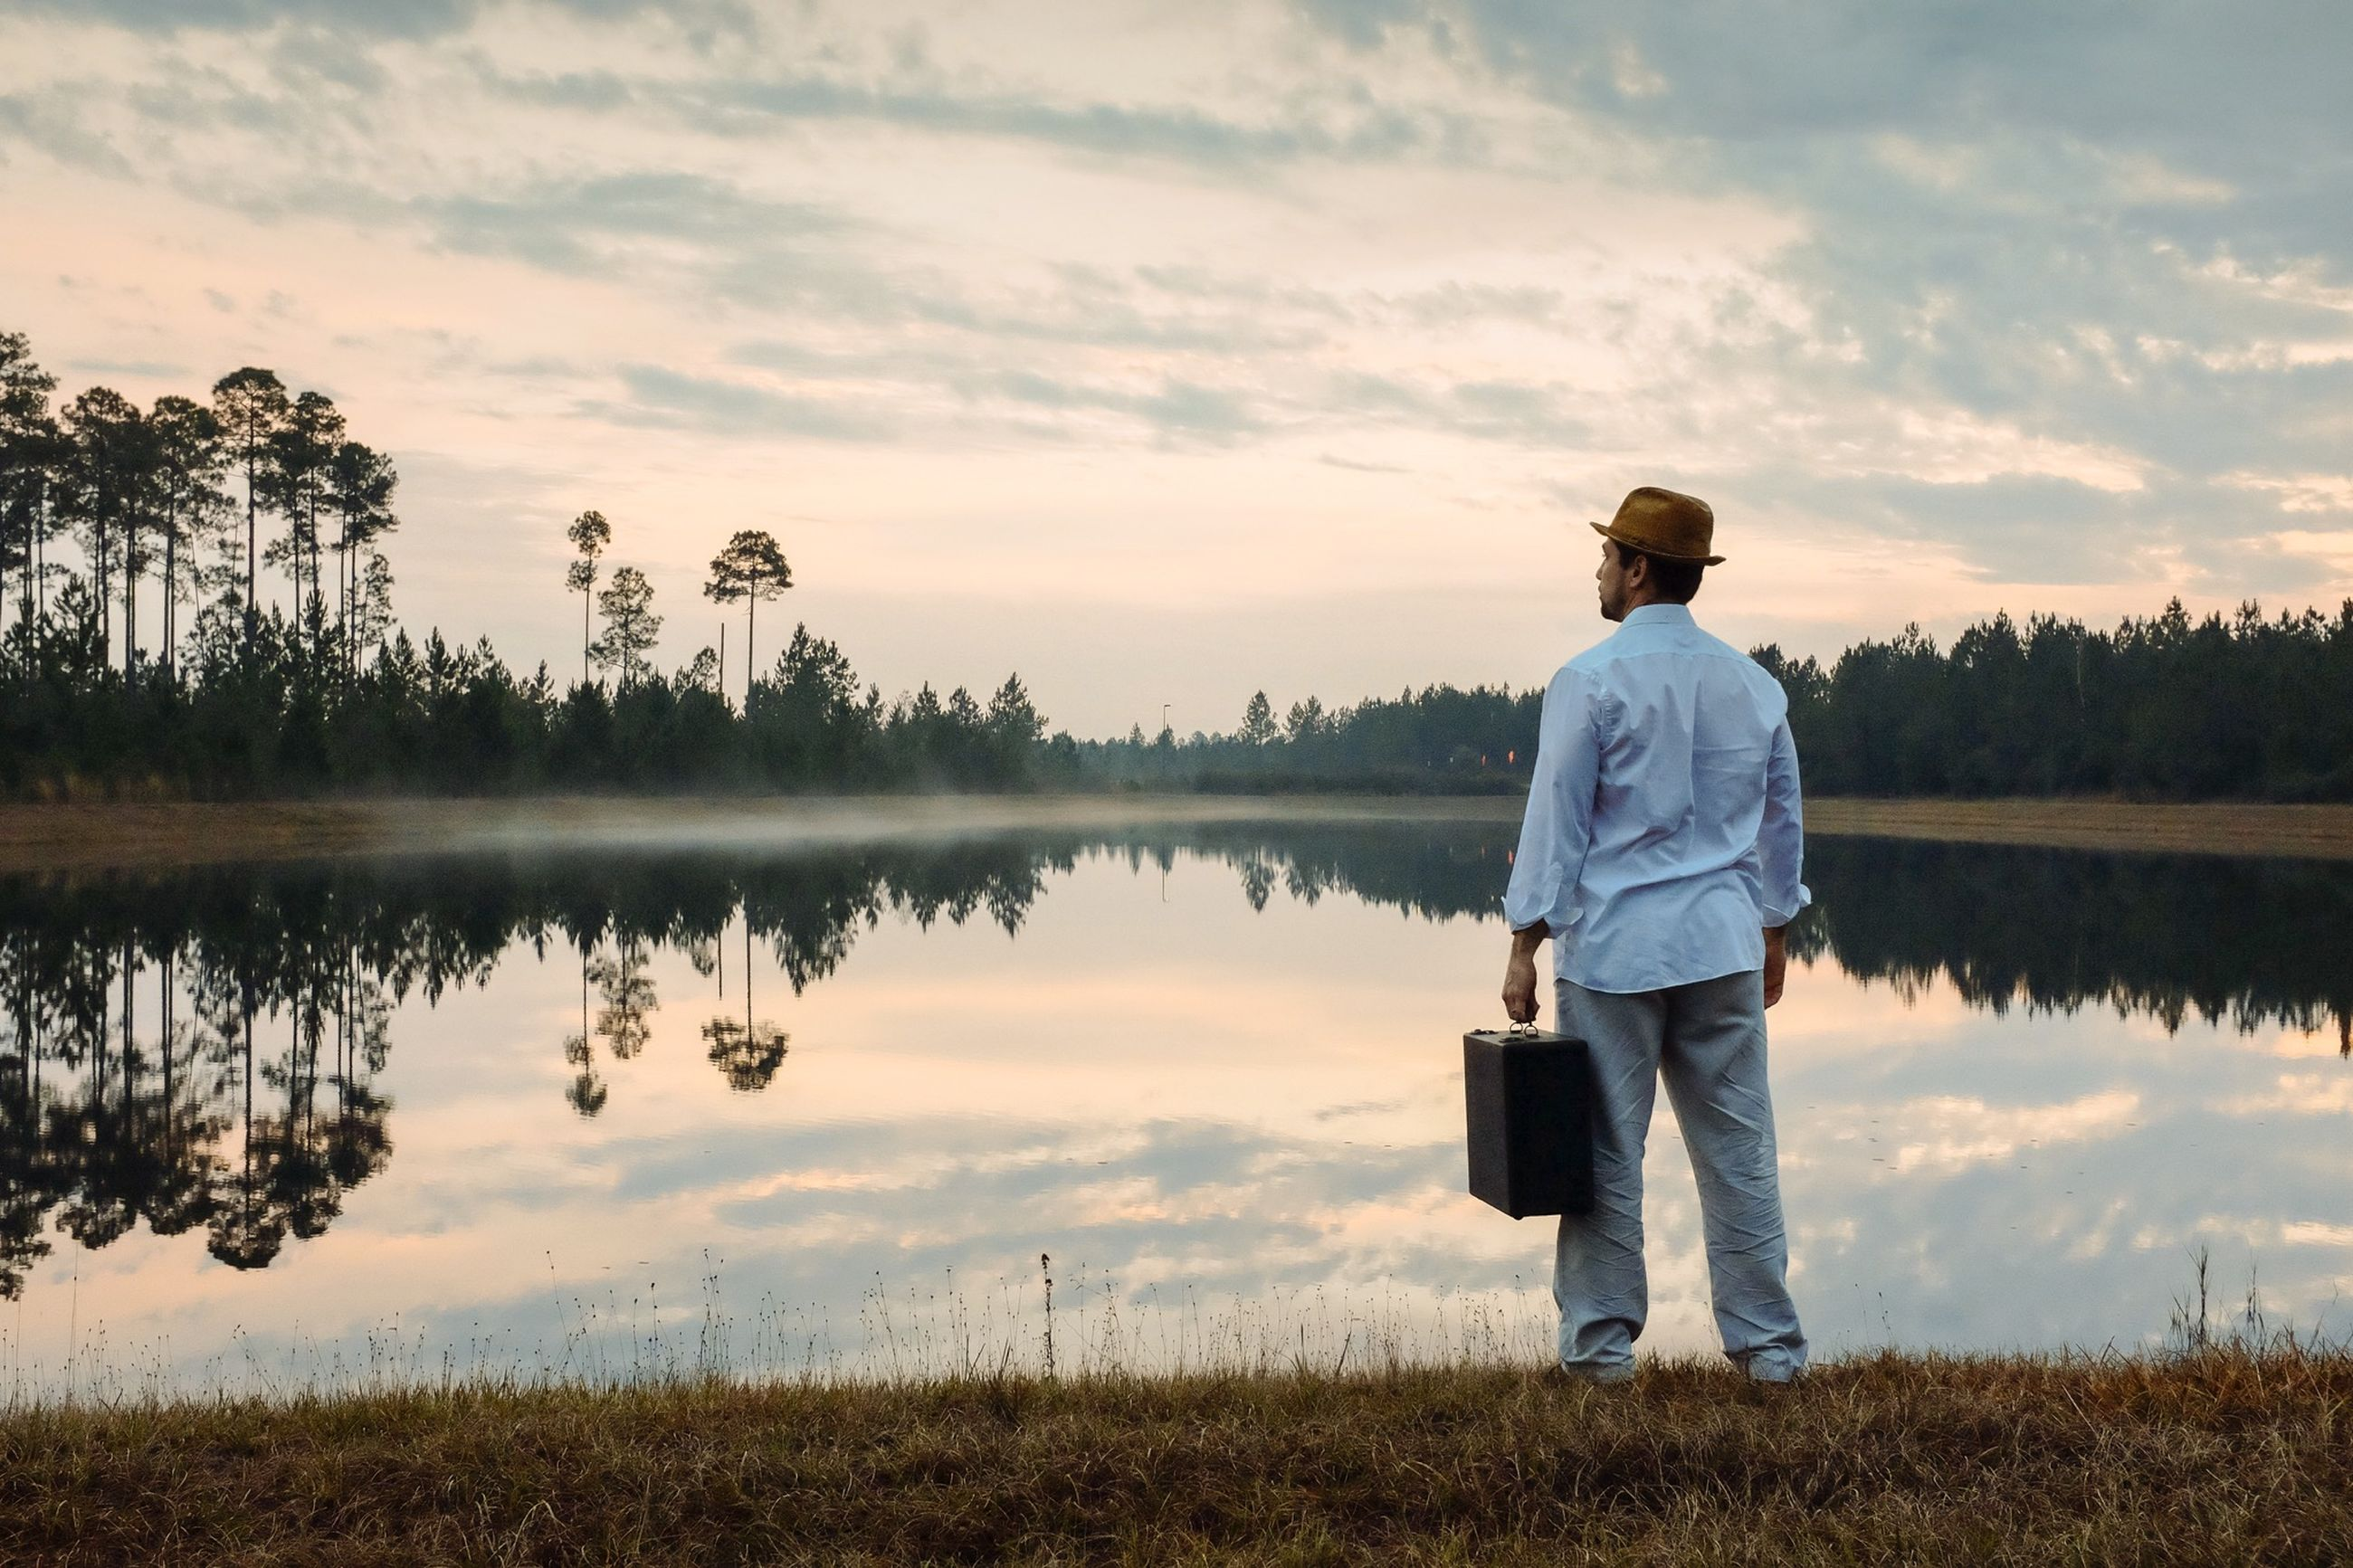 water, sky, lake, reflection, tranquility, lifestyles, leisure activity, standing, tranquil scene, rear view, scenics, beauty in nature, nature, grass, cloud - sky, full length, casual clothing, men